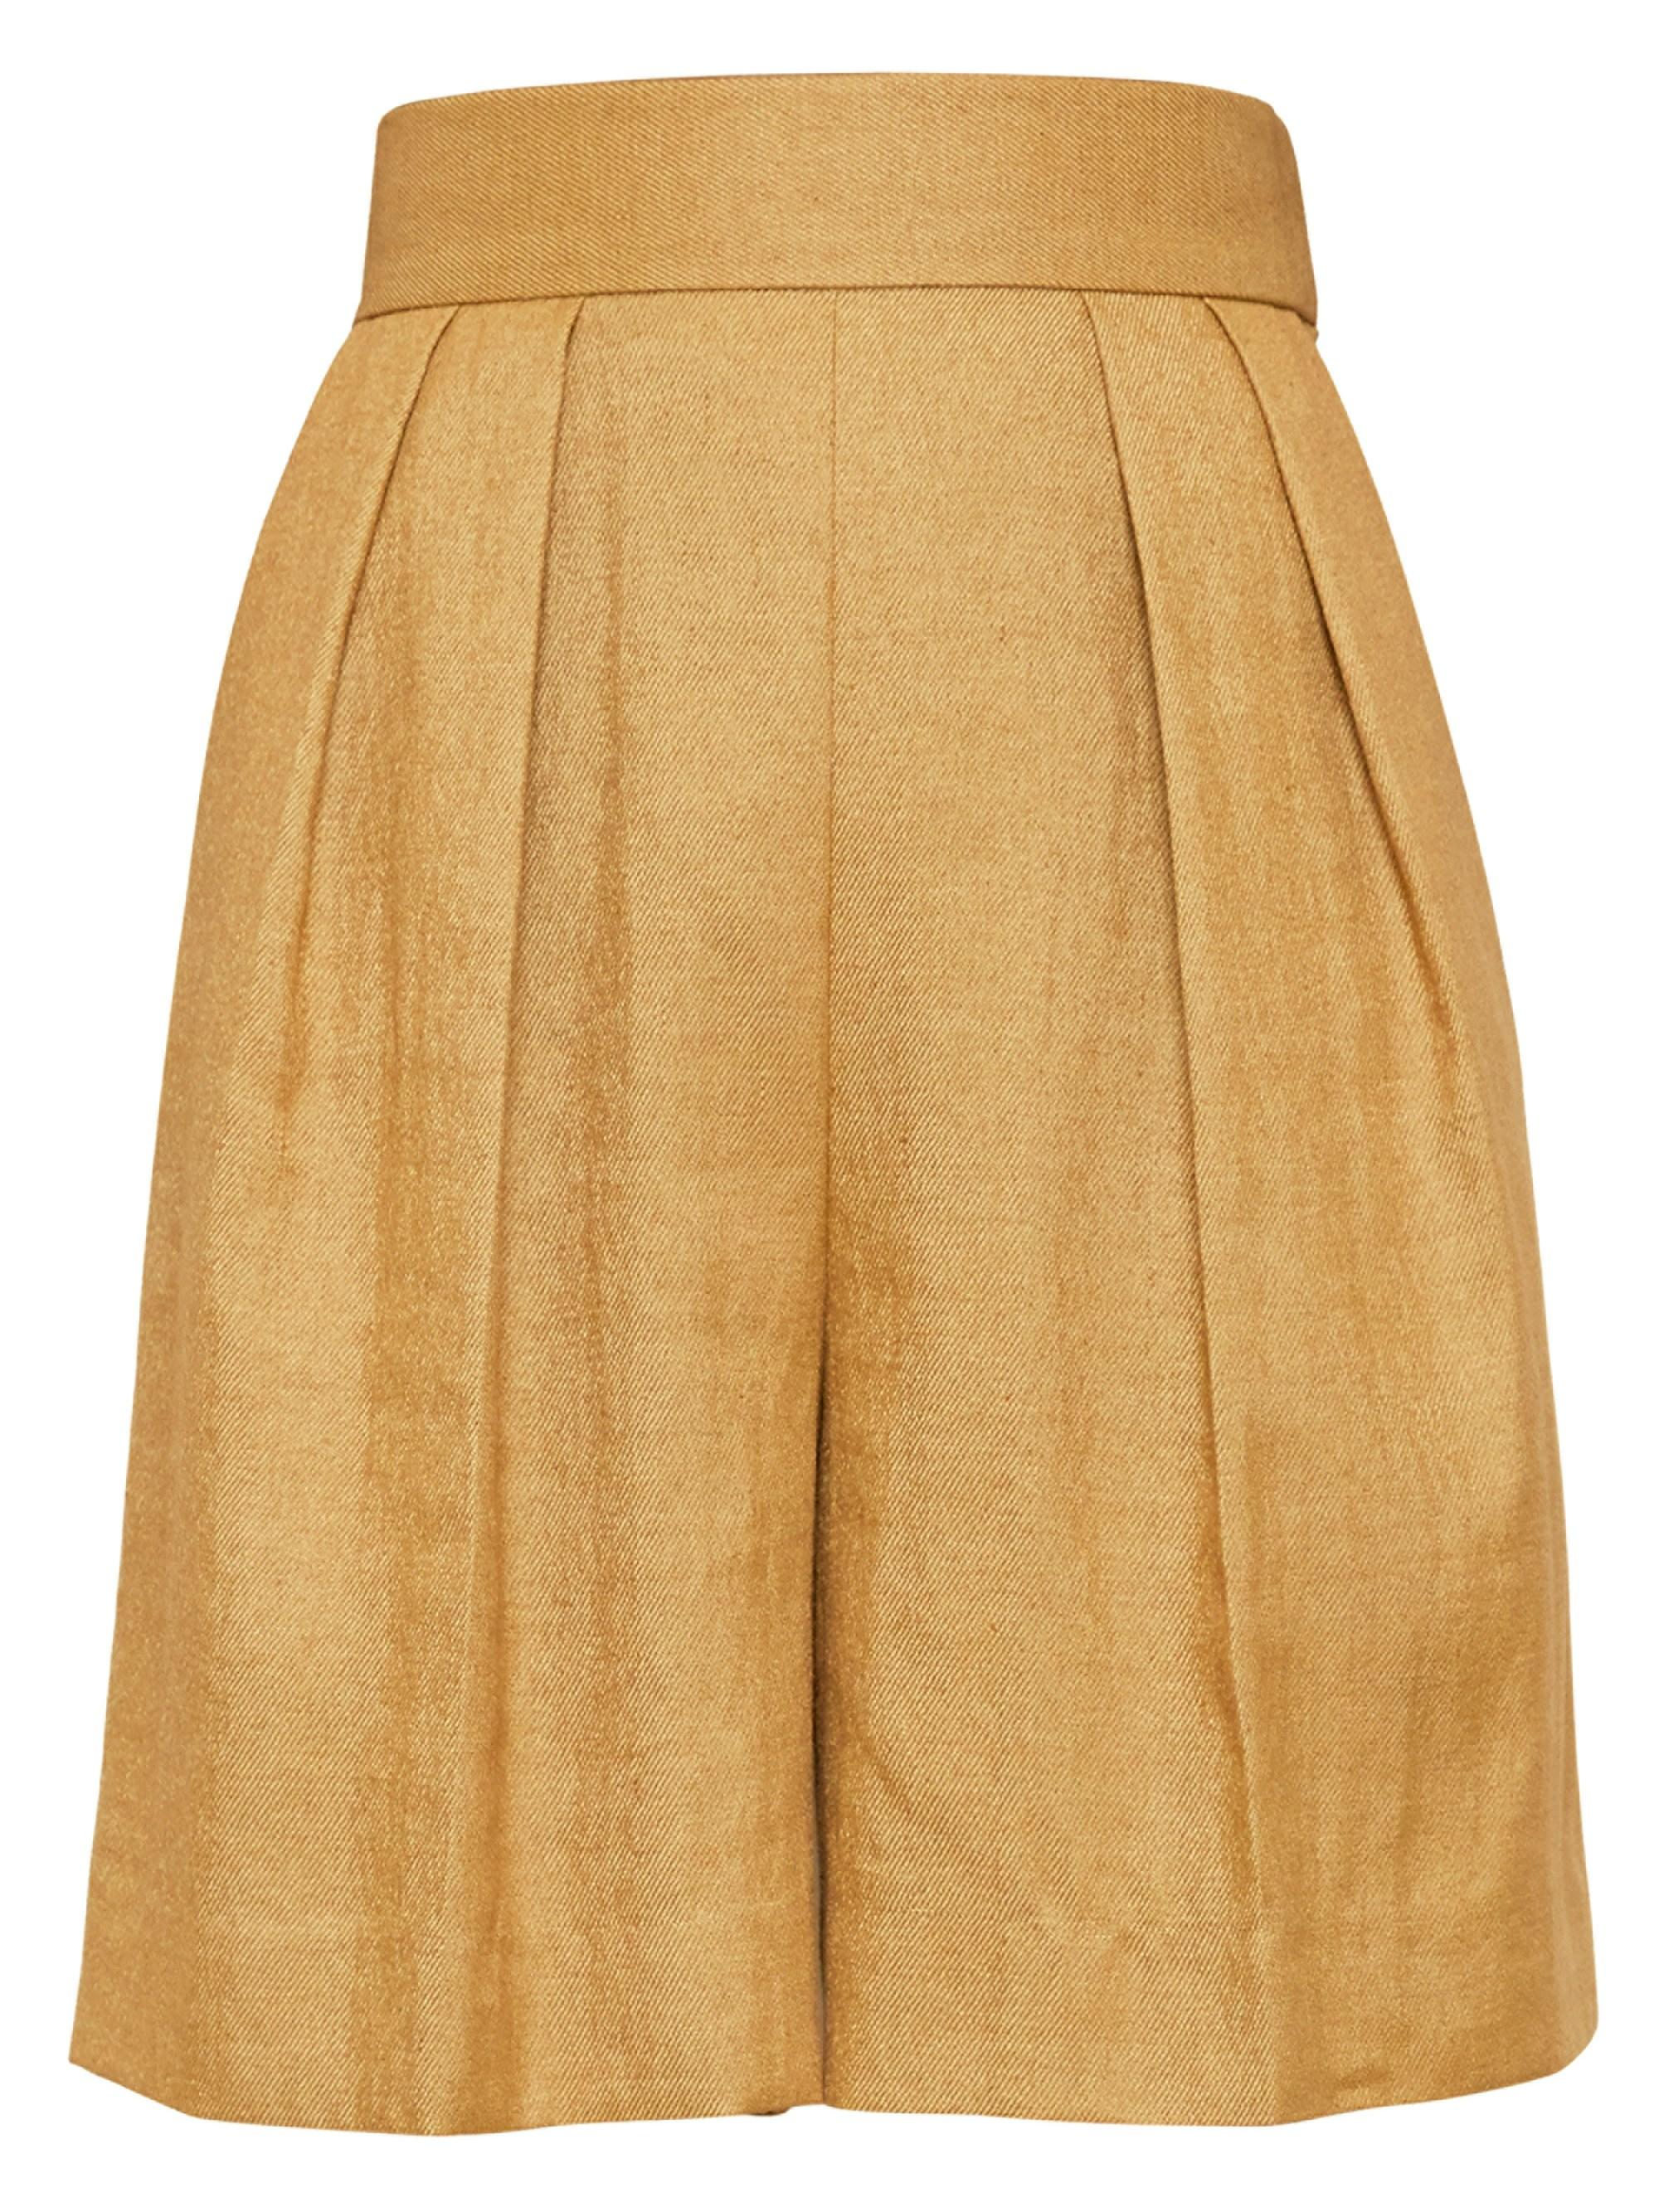 eabaddf15b13e Lyst - Theory High-waist Pleat-front Shorts in Natural